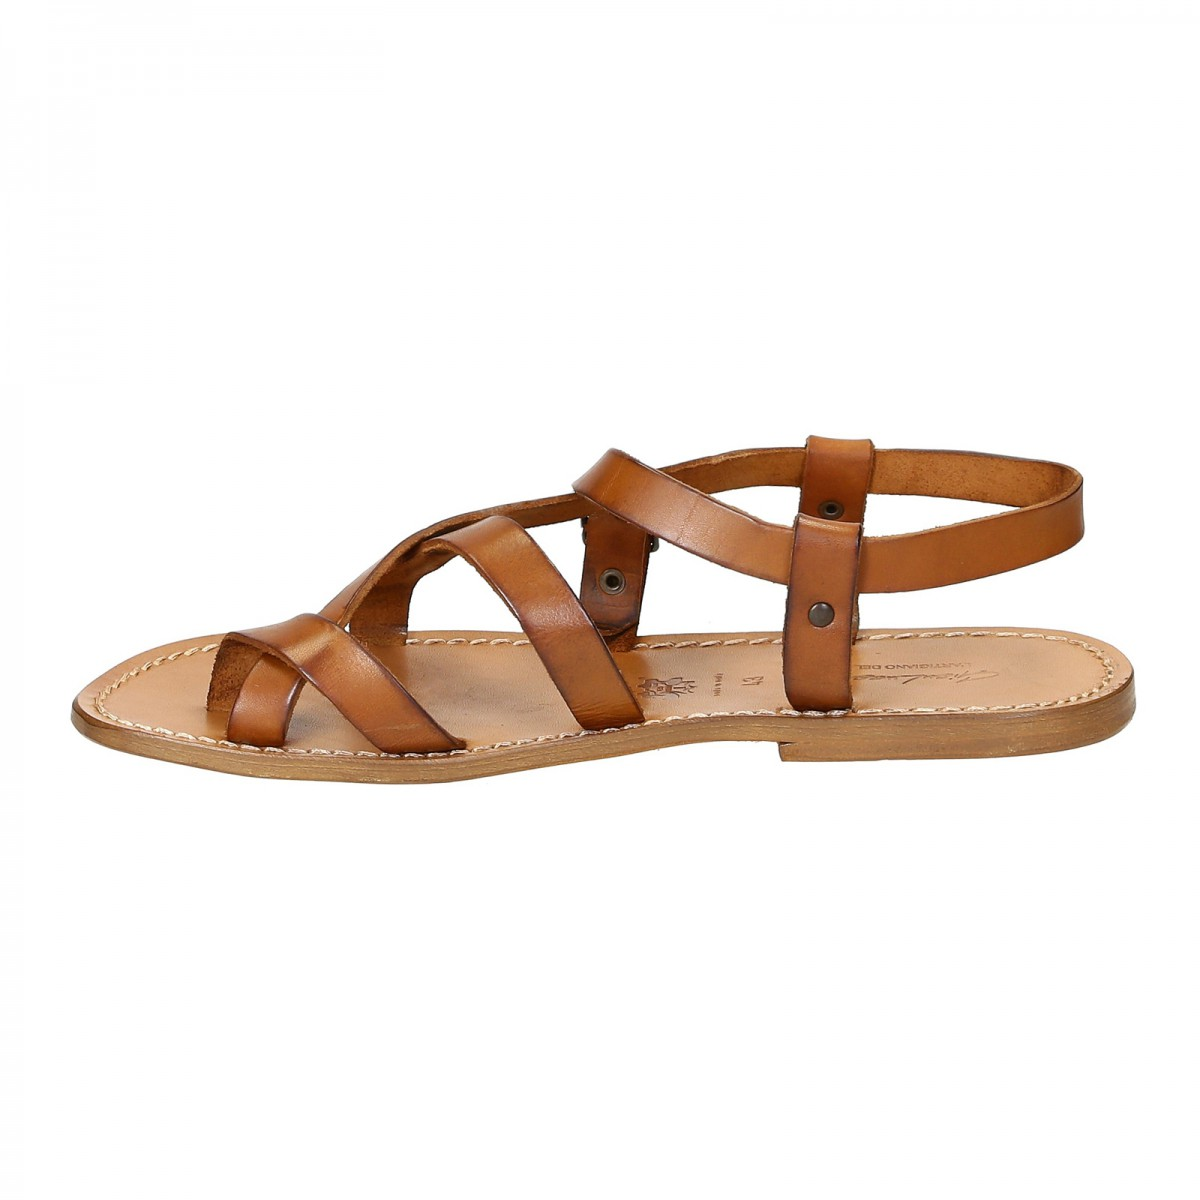 0f729dd3a Handmade leather sandals for men in vintage cuir color. Previous. Next